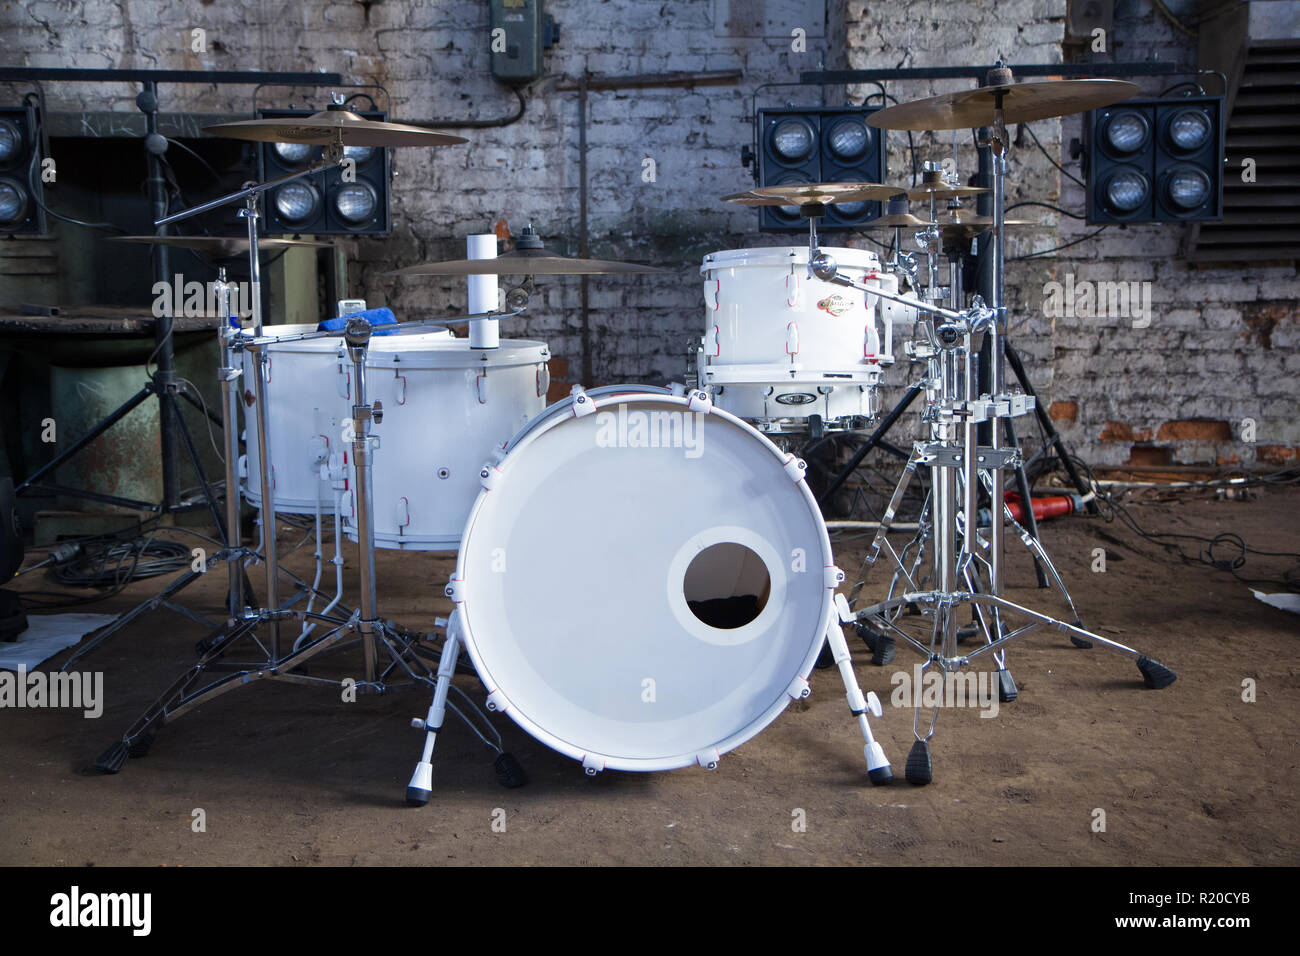 White drum Set in industrial room on white brick background. - Stock Image